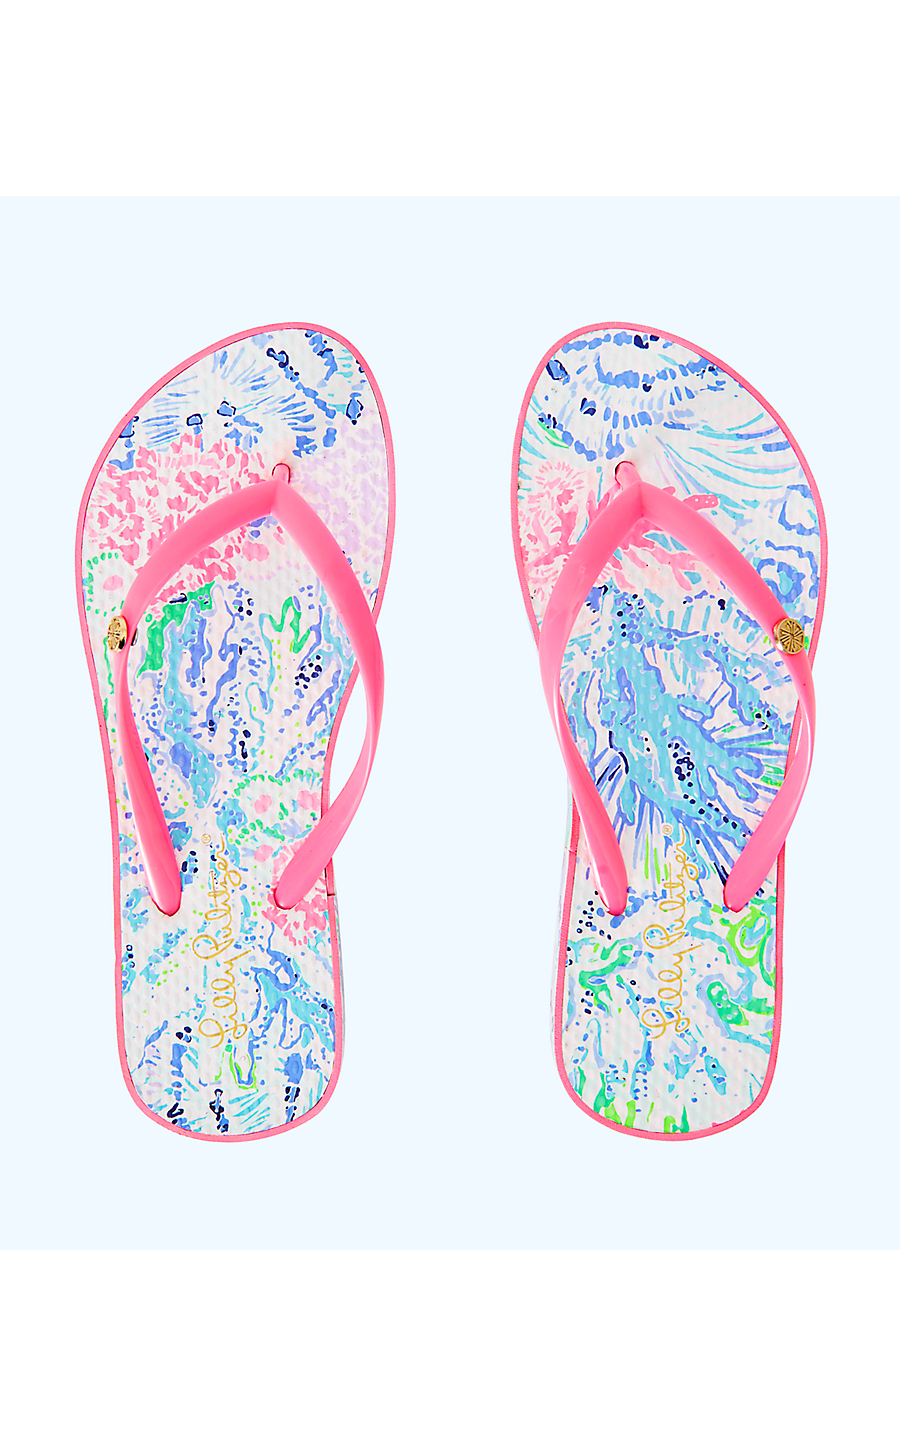 ed9060cd0c255a POOL FLIP FLOP - SINK OR SWIM - Lilly Pulitzer Store - Life's a Beach